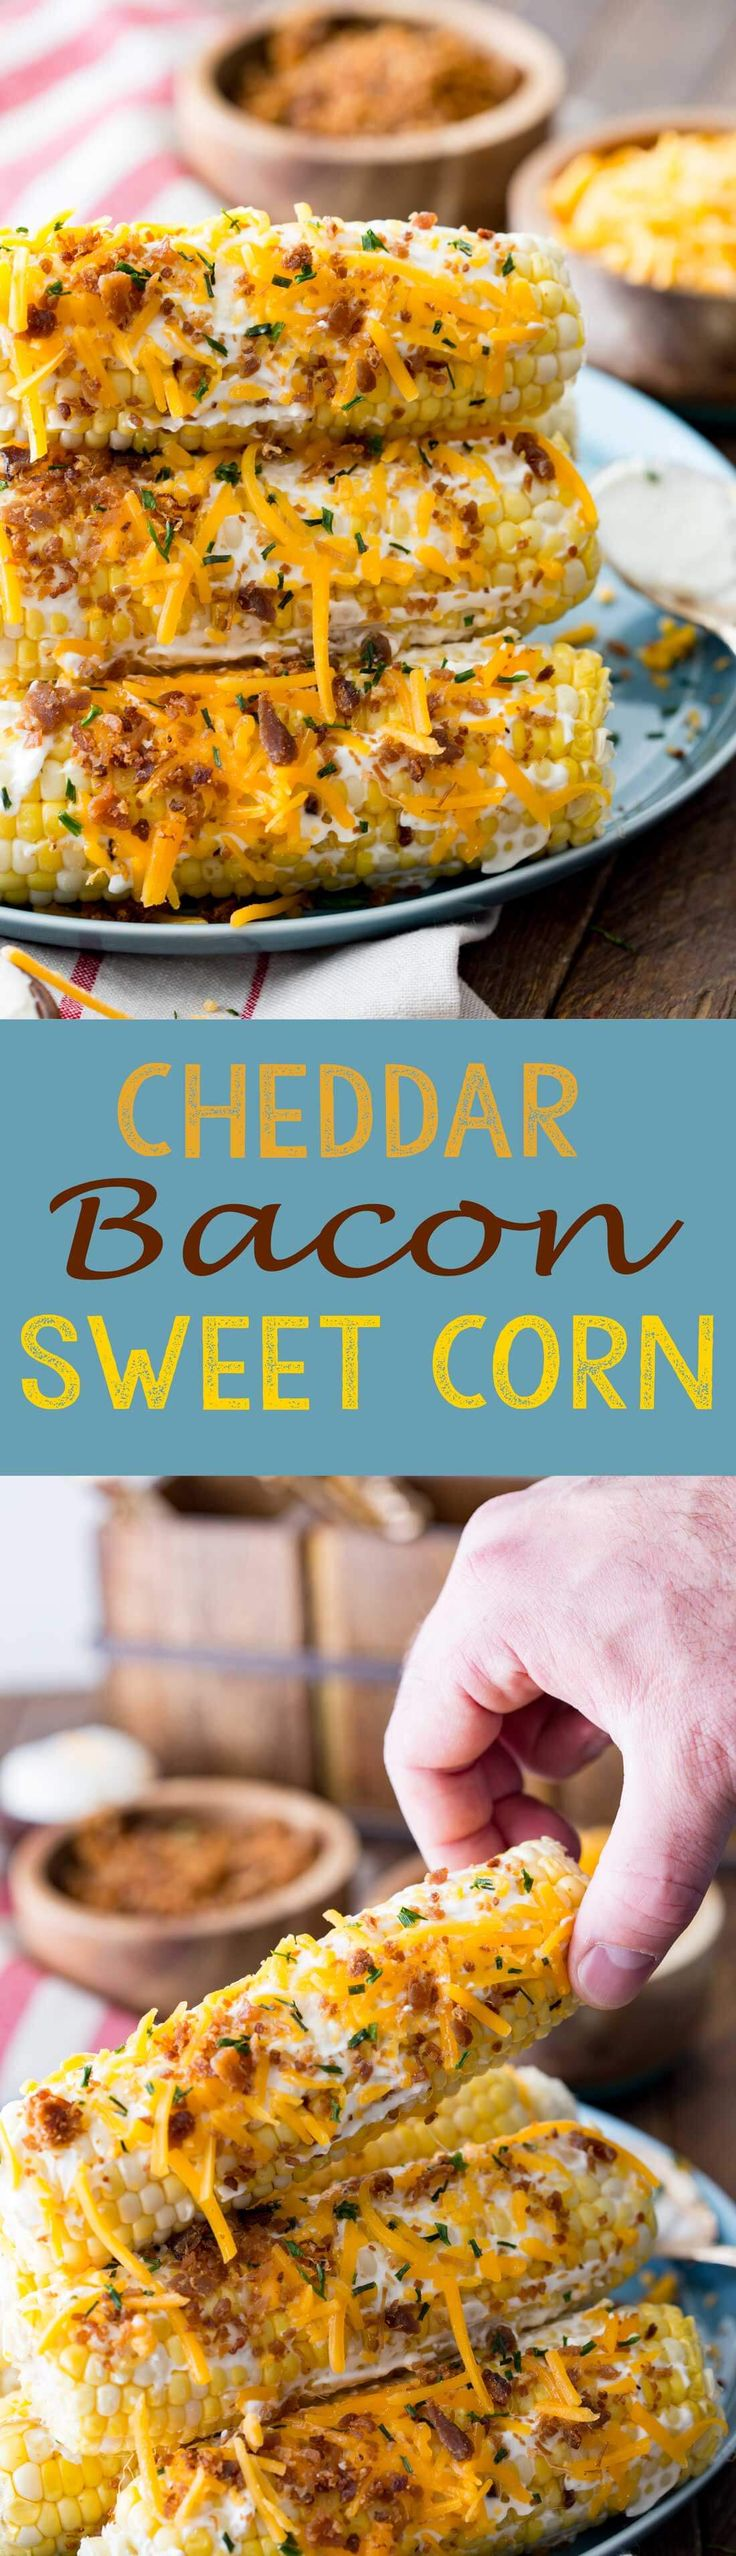 Cheddar bacon sweet corn is a fantastic amazing dinner side dish.